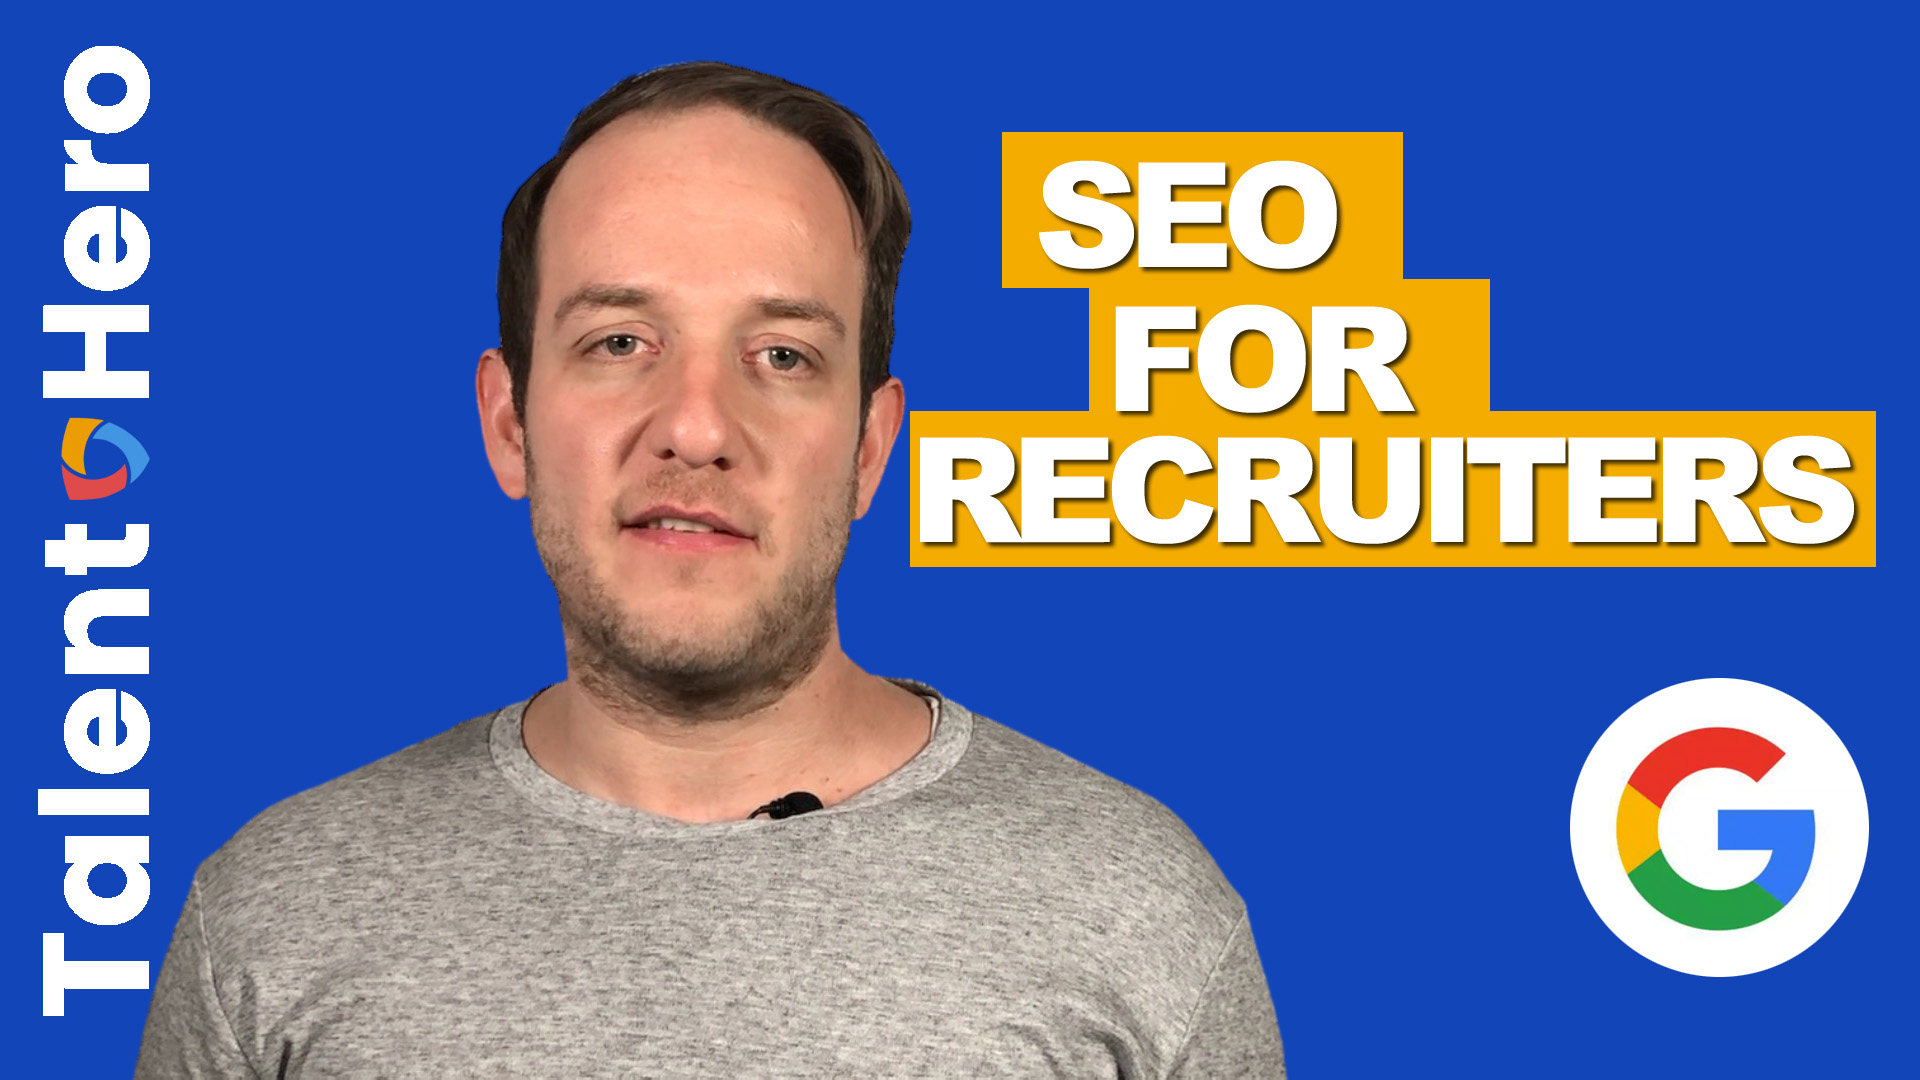 SEO For Recruiters Thumbnail